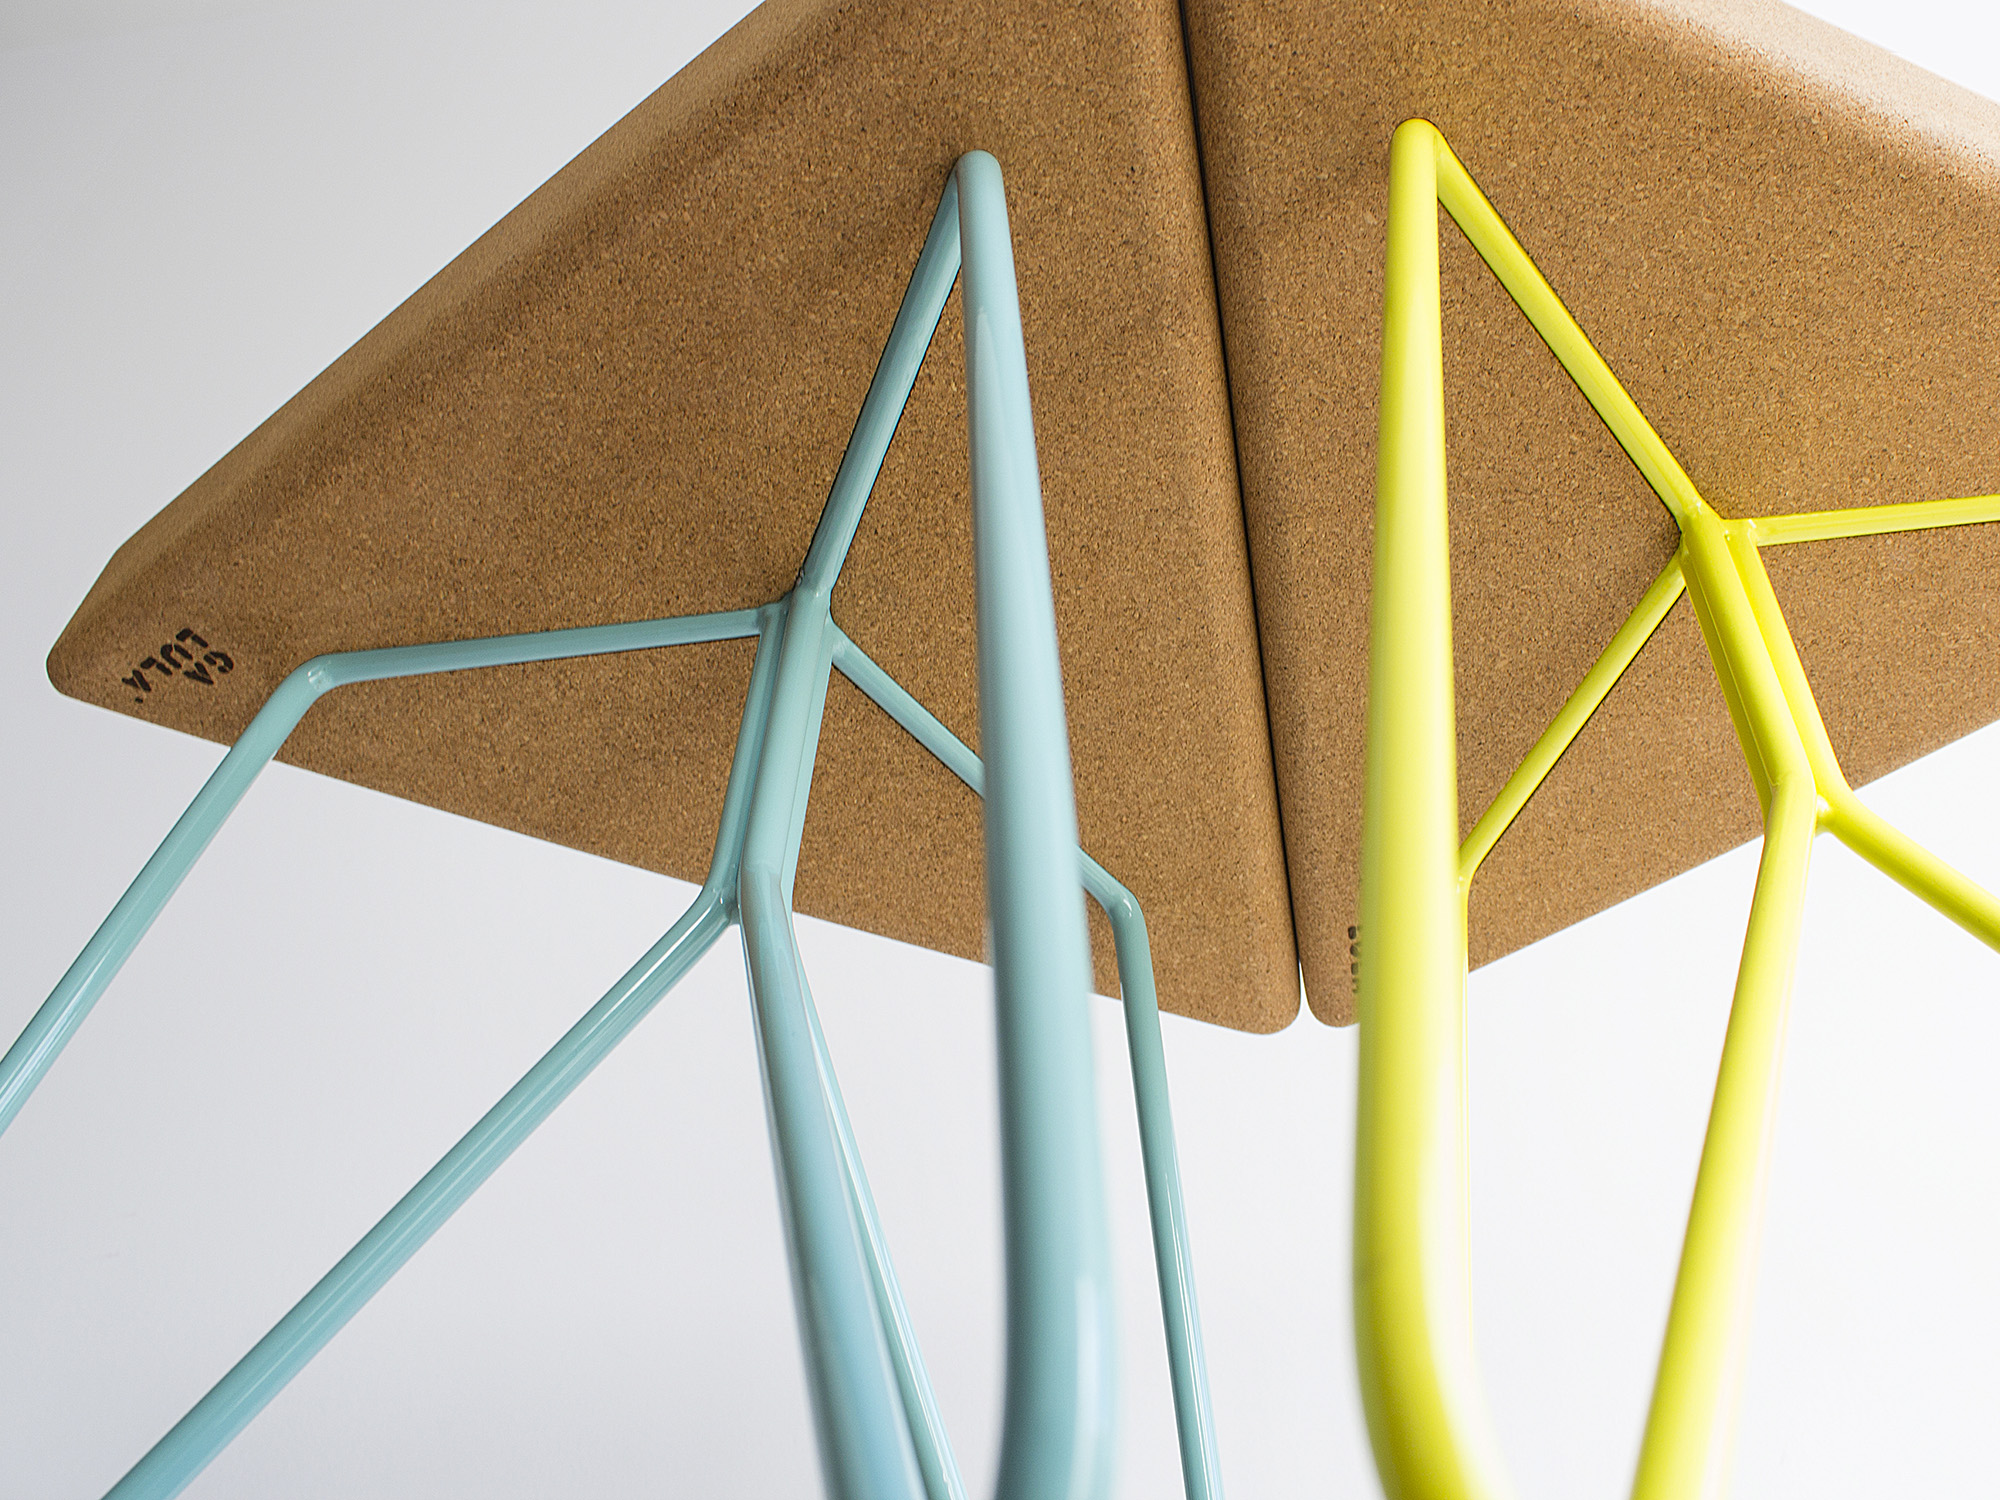 Galula | Três stool or table, light cork and blue / yellow legs